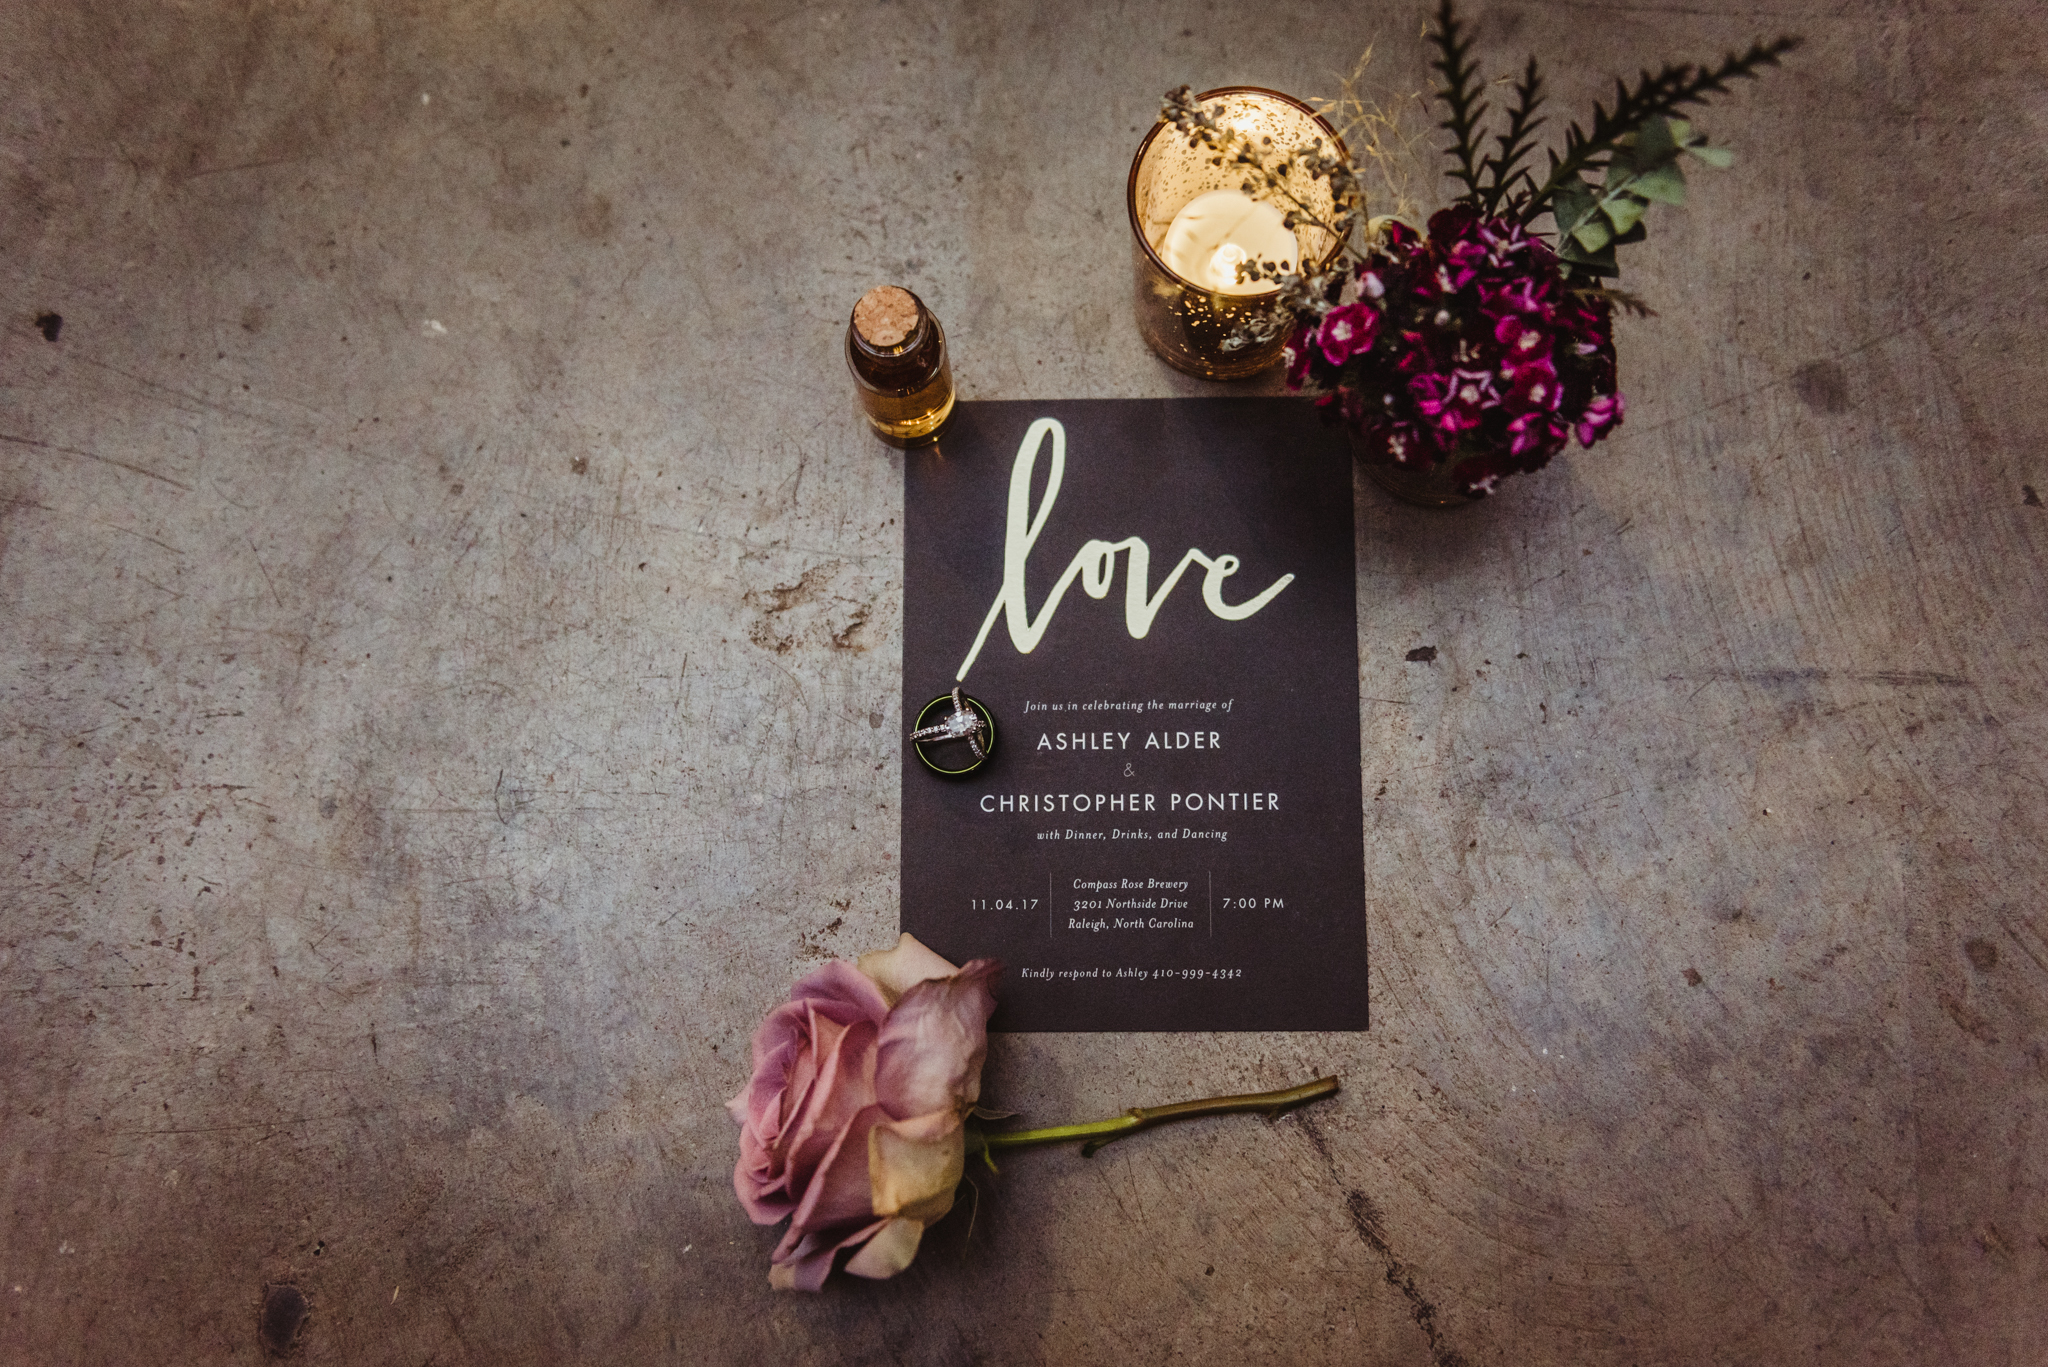 black-and-gold-wedding-invitation-and-rings-with-purple-flowers.jpg